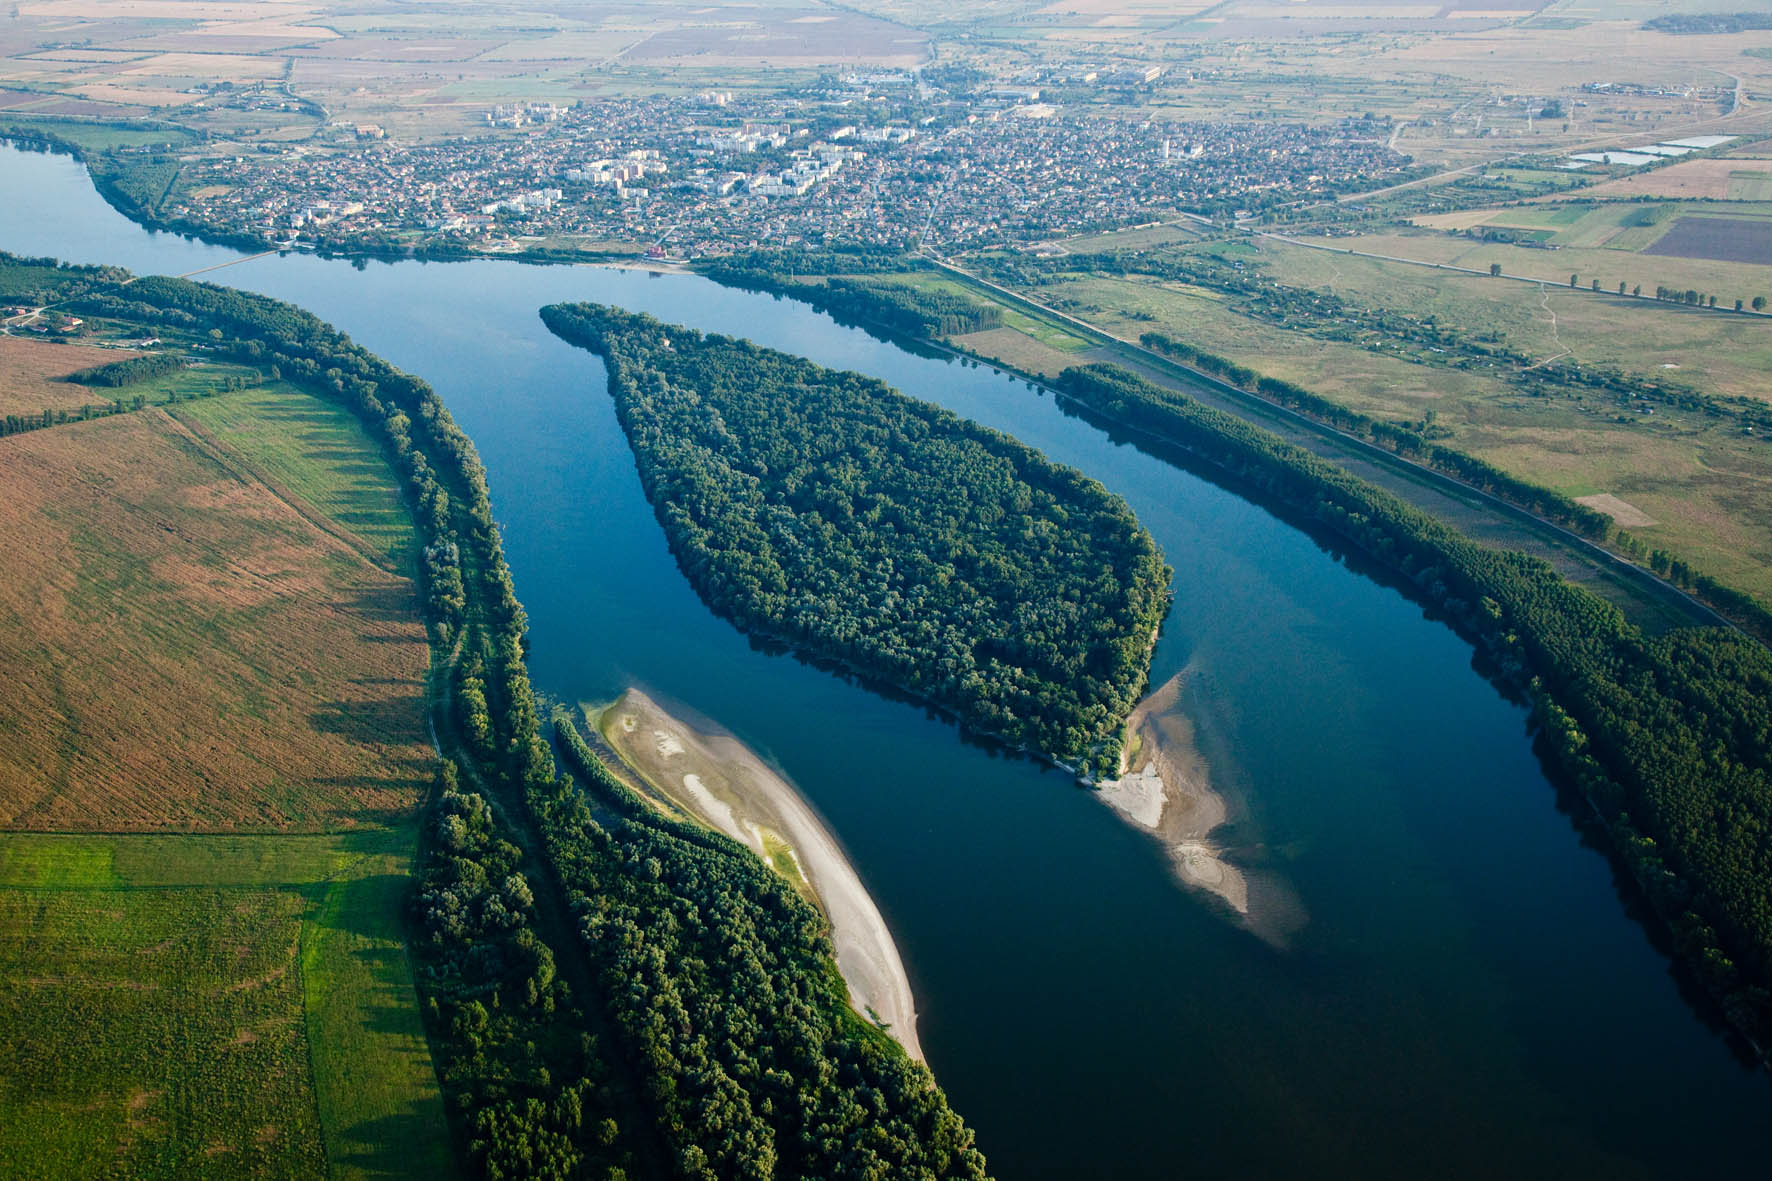 One of the aims of the partnership is to restore Danube floodplains to demonstrate the benefits of wetland systems to the public and decision makers.